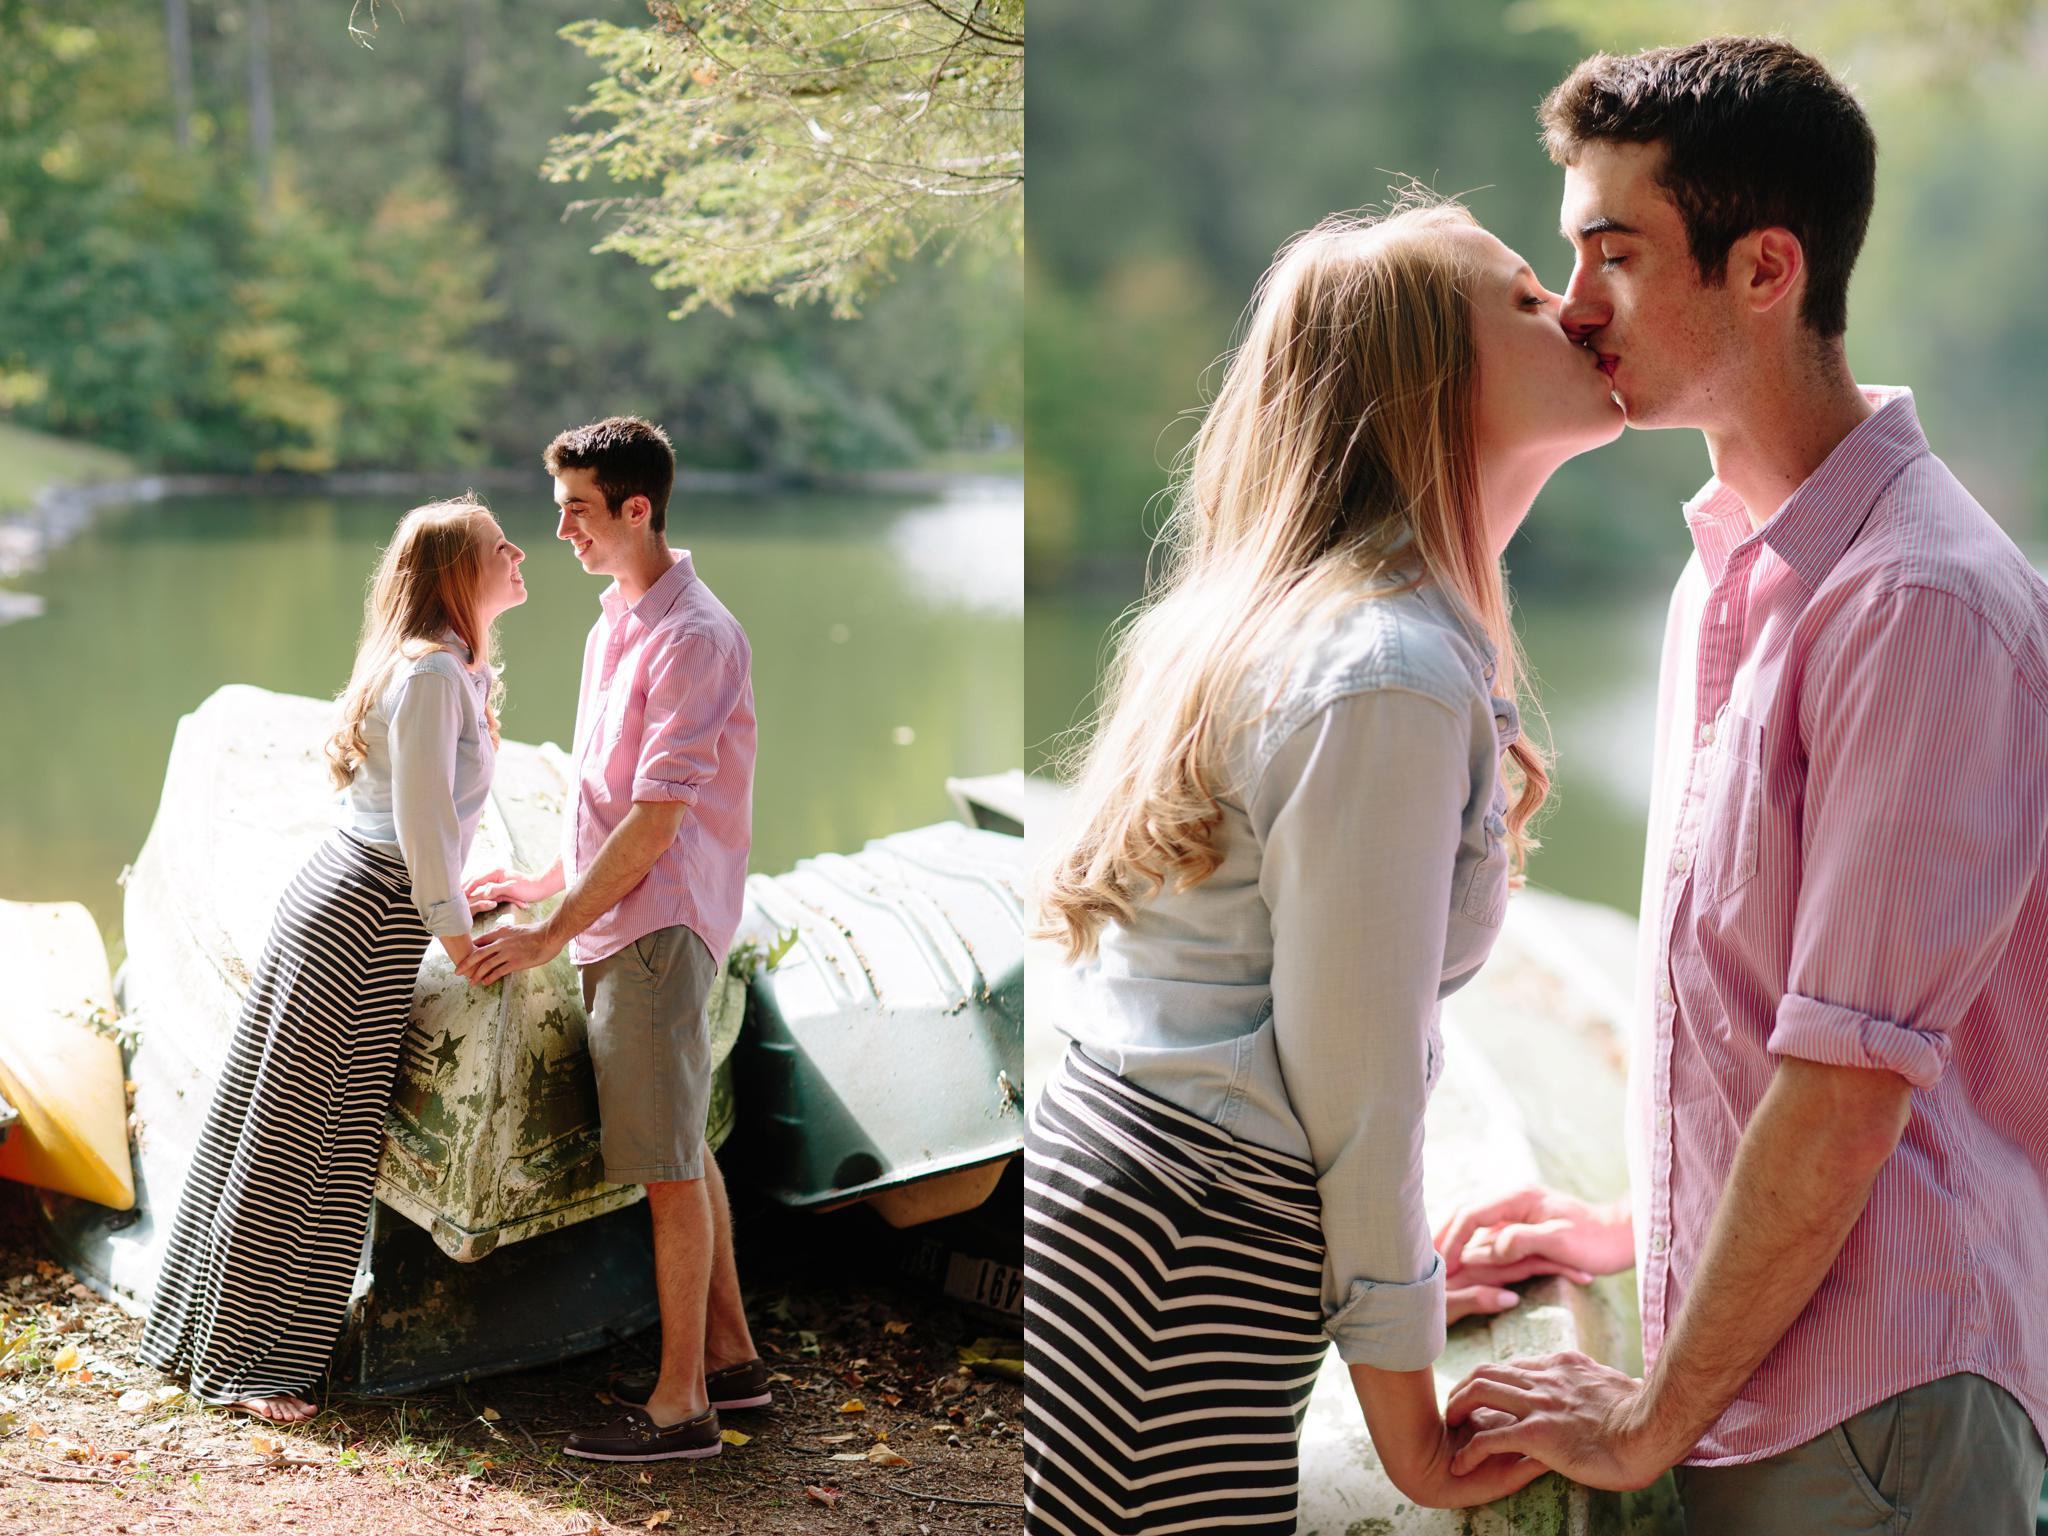 saddle_lake_engagement_session-34.jpg